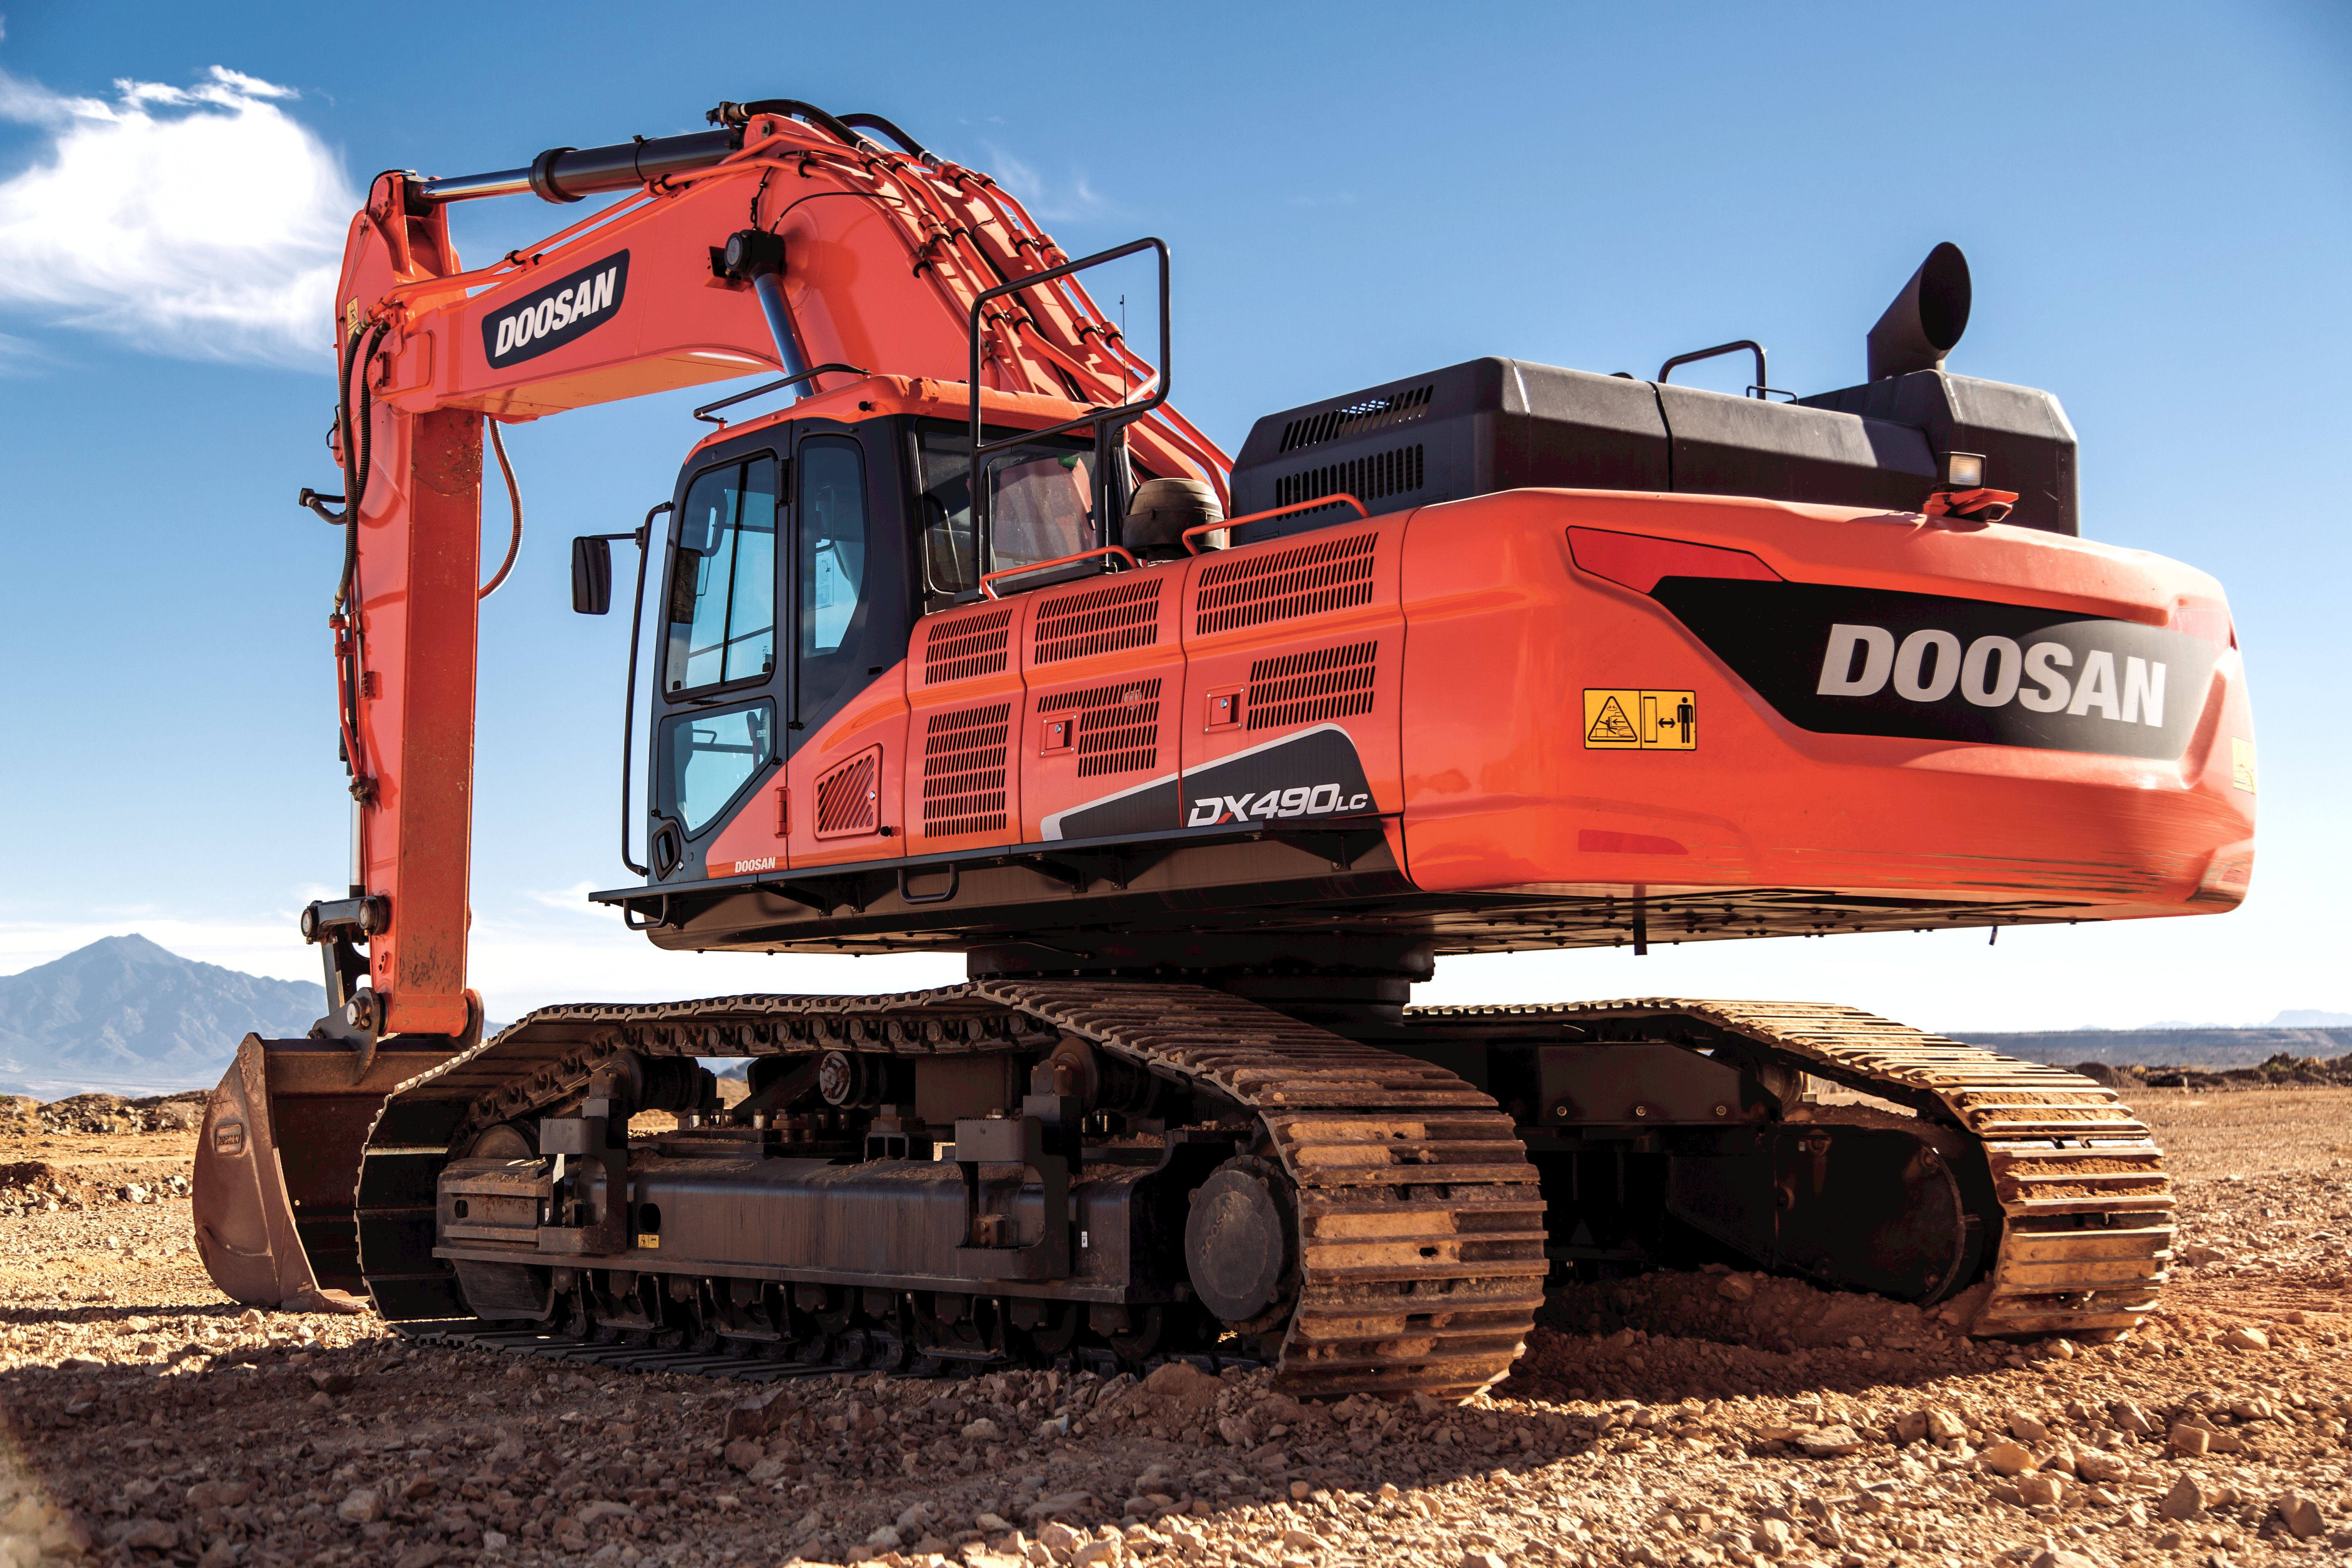 Doosan expands heavy equipment lineup with the addition of